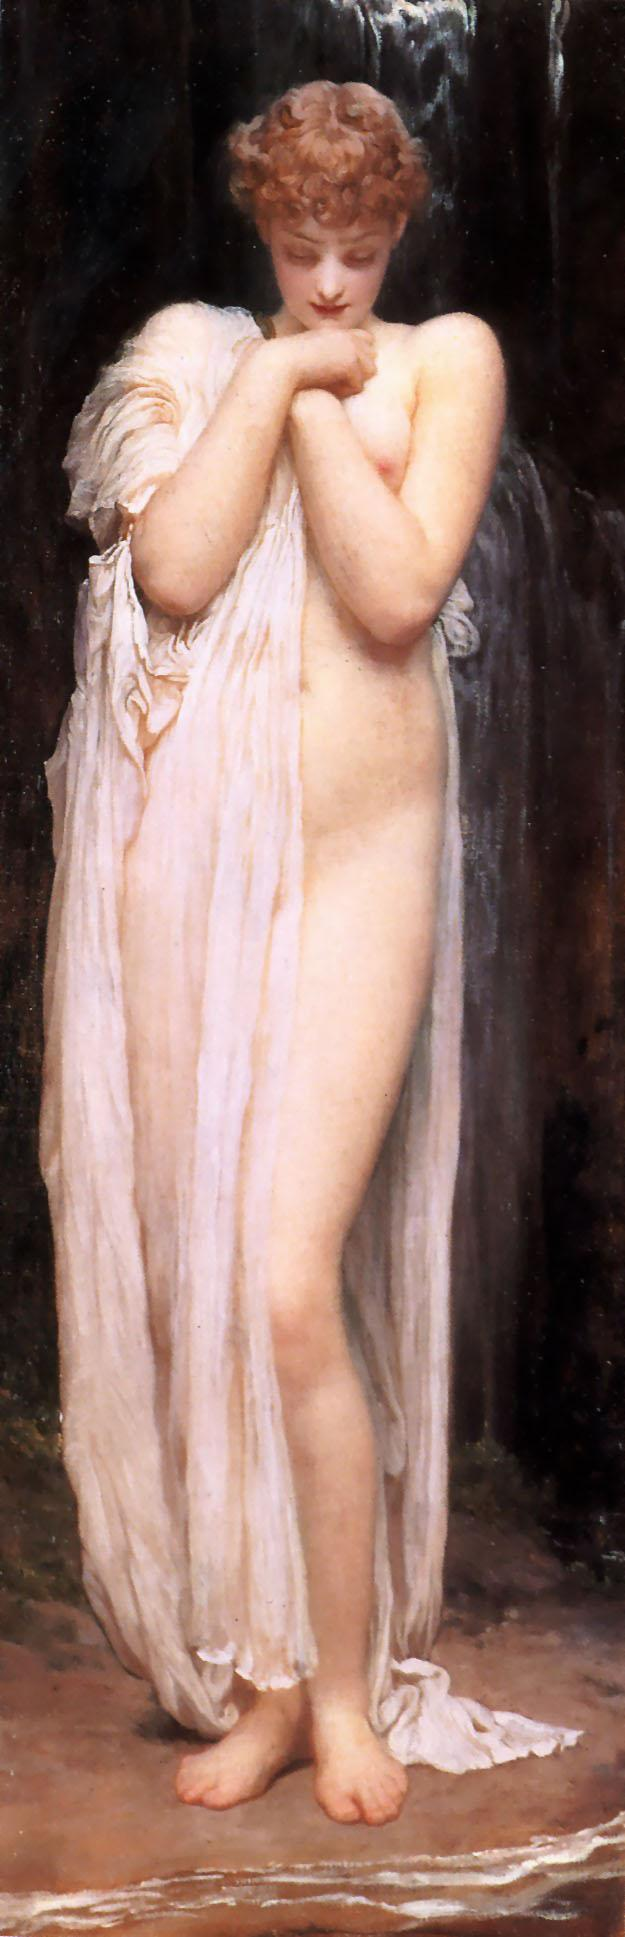 The Nymph of the River - Frederic Leighton